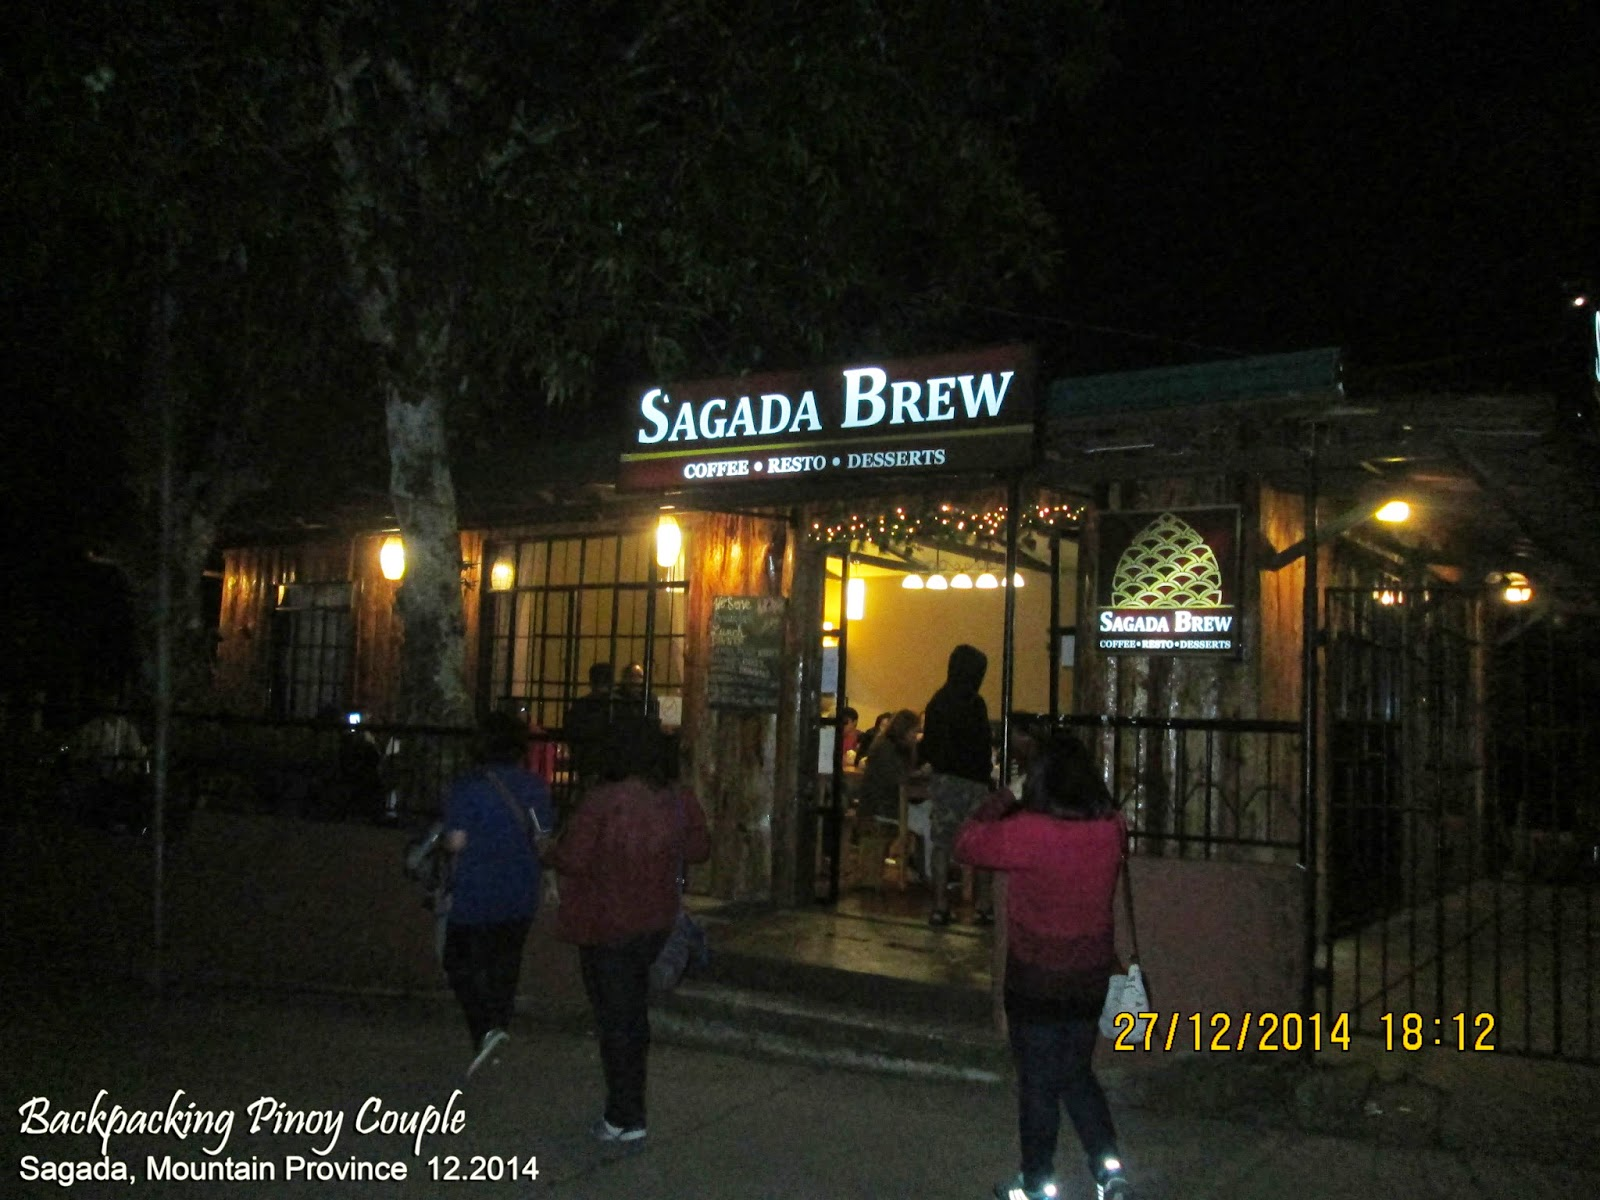 Backpacking Pinoy Couple, Sagada, Mountain Province, Philippines, Sagada Brew